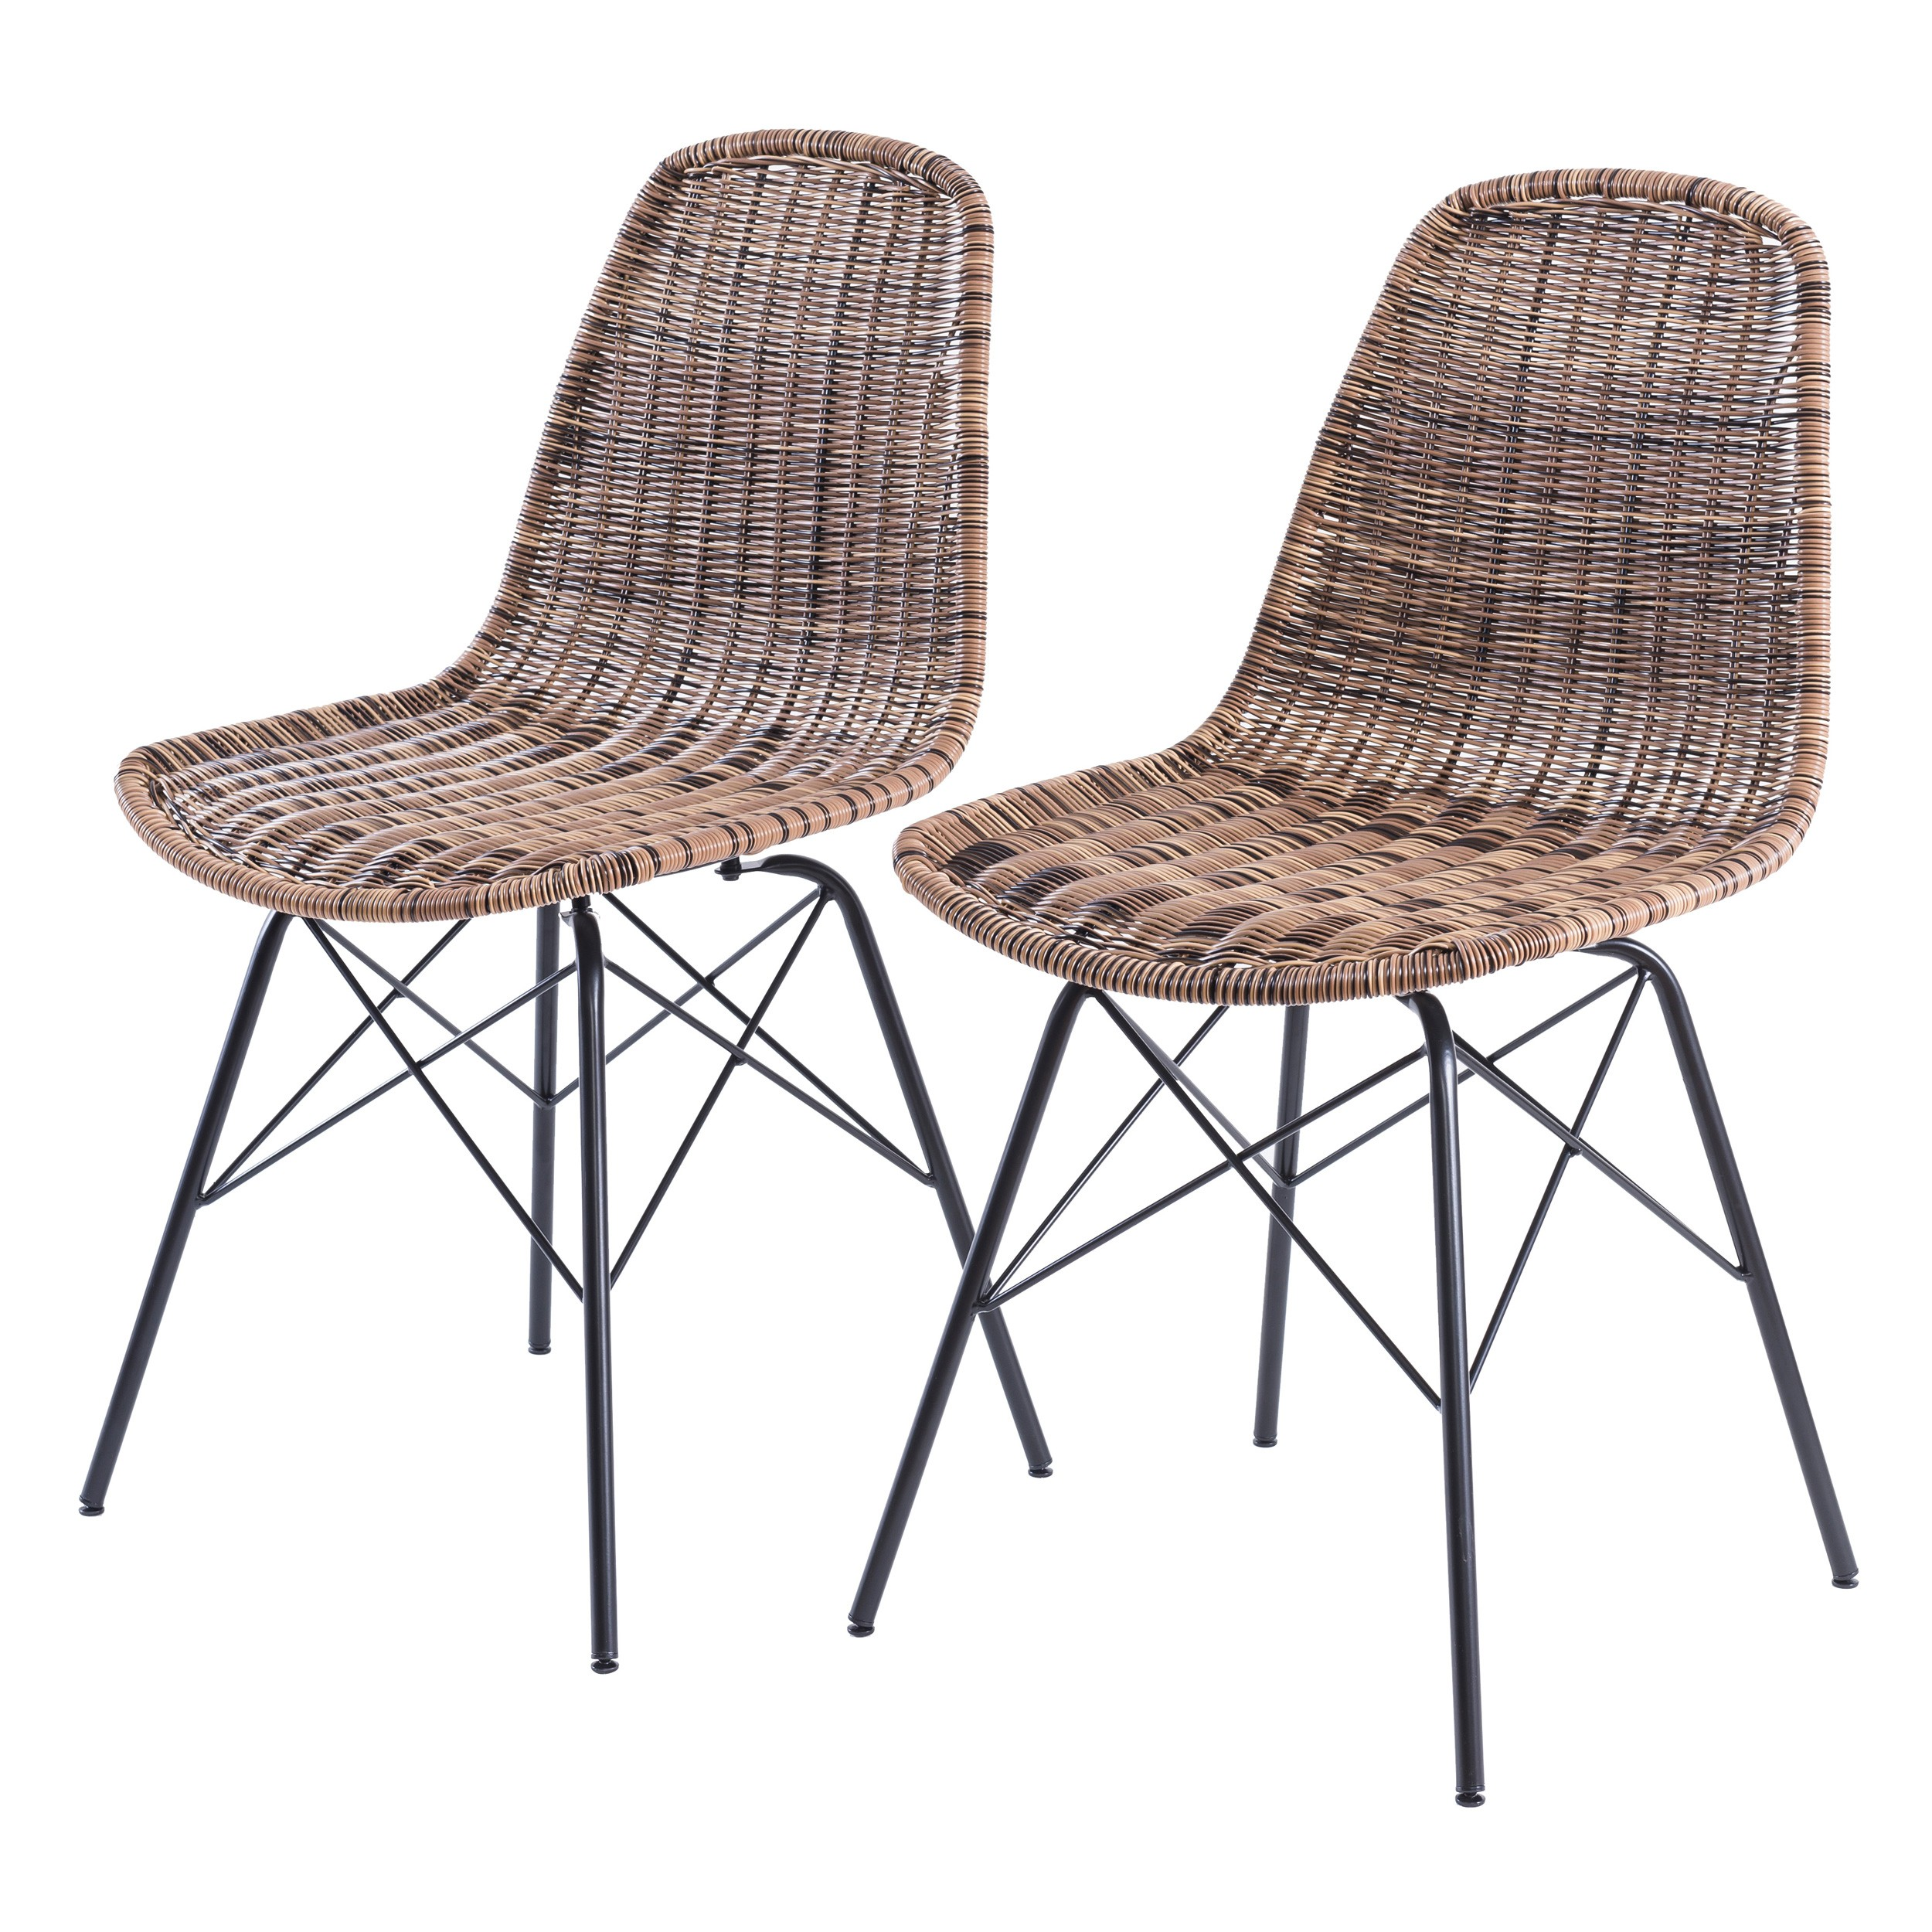 Chaise tiptur en r sine tress e naturelle lot de 2 for Acheter des chaises